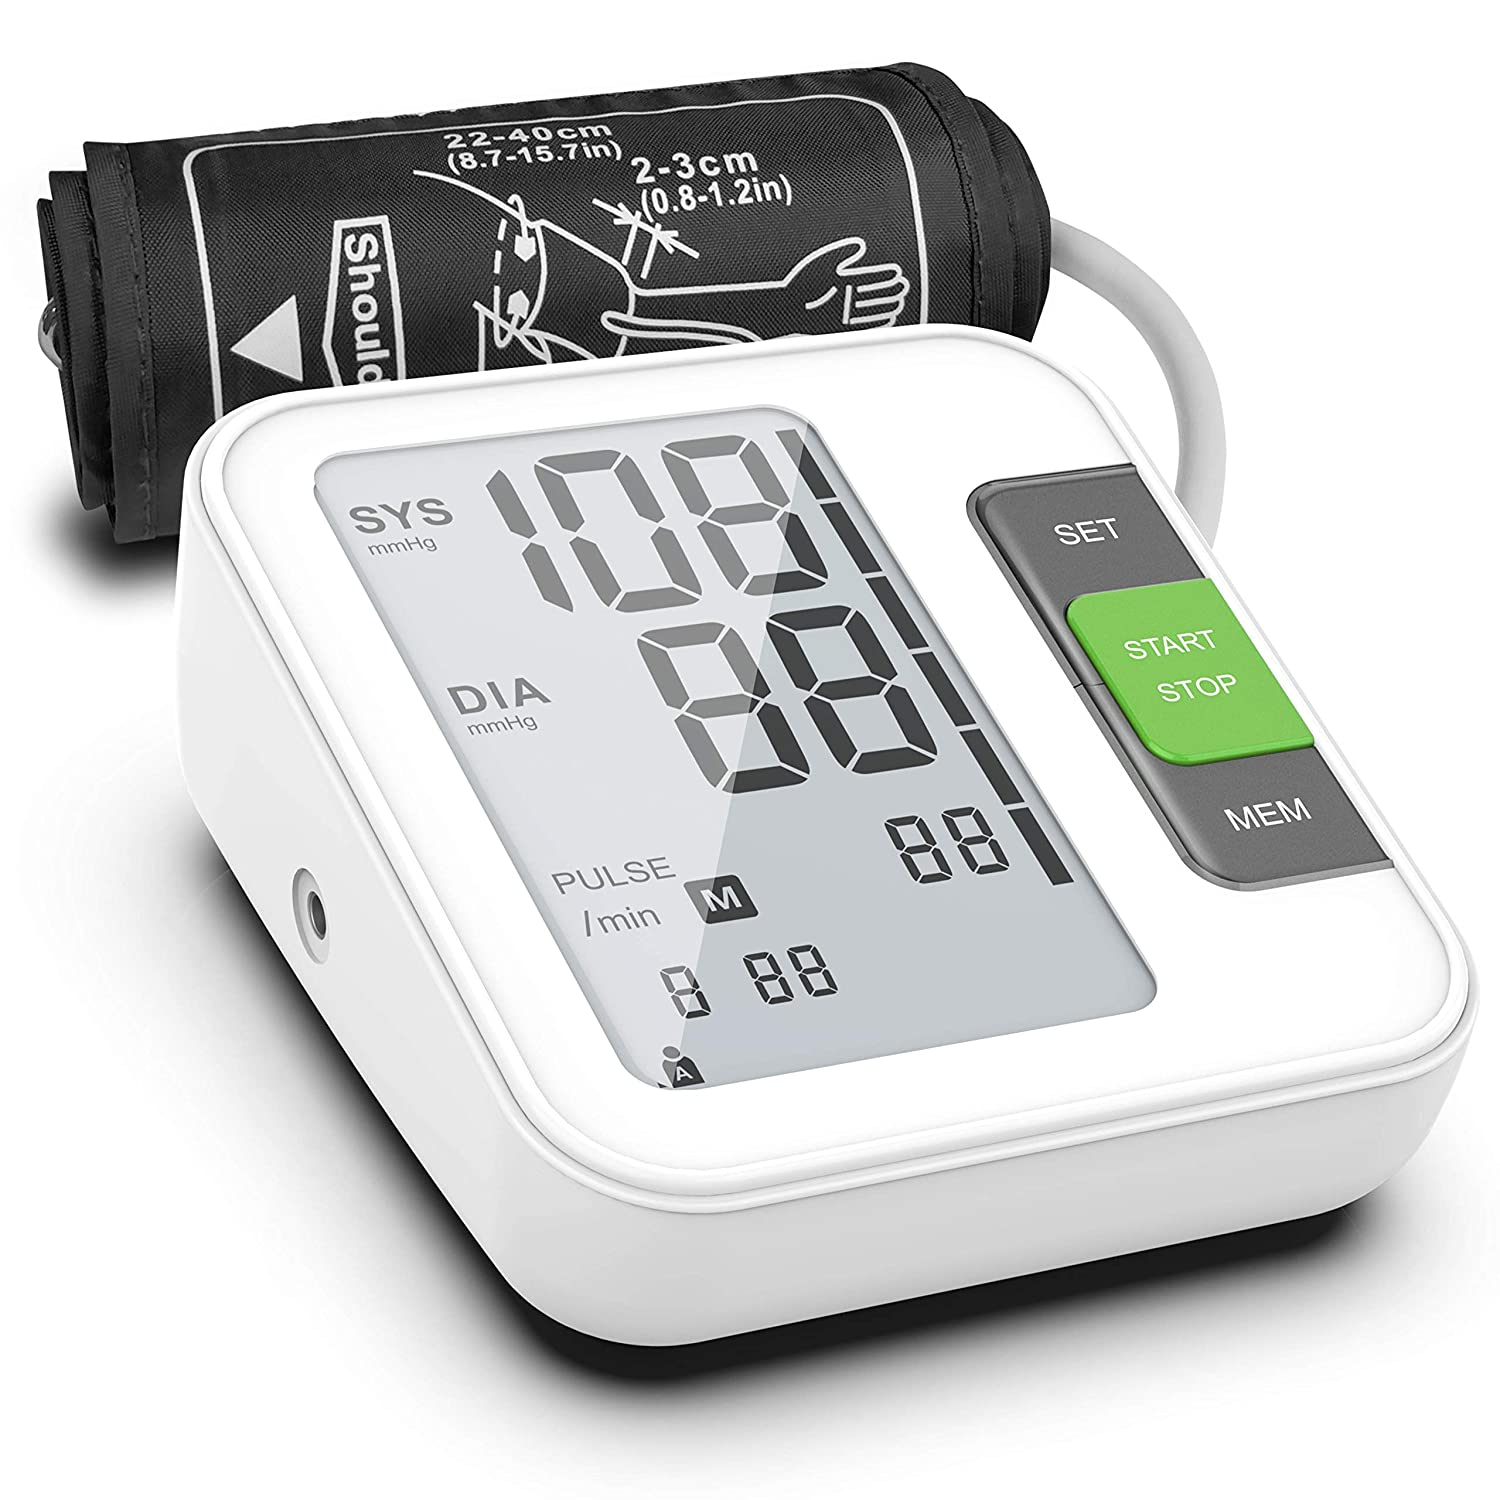 2019 Latest Blood Pressure Monitor, Fully Automatic Upper Arm Digital BP Machine with Cuff 8.7 – 15.7 , 240 Memory, 2 Users, LCD, Intelligent Broadcast – FDA Approved